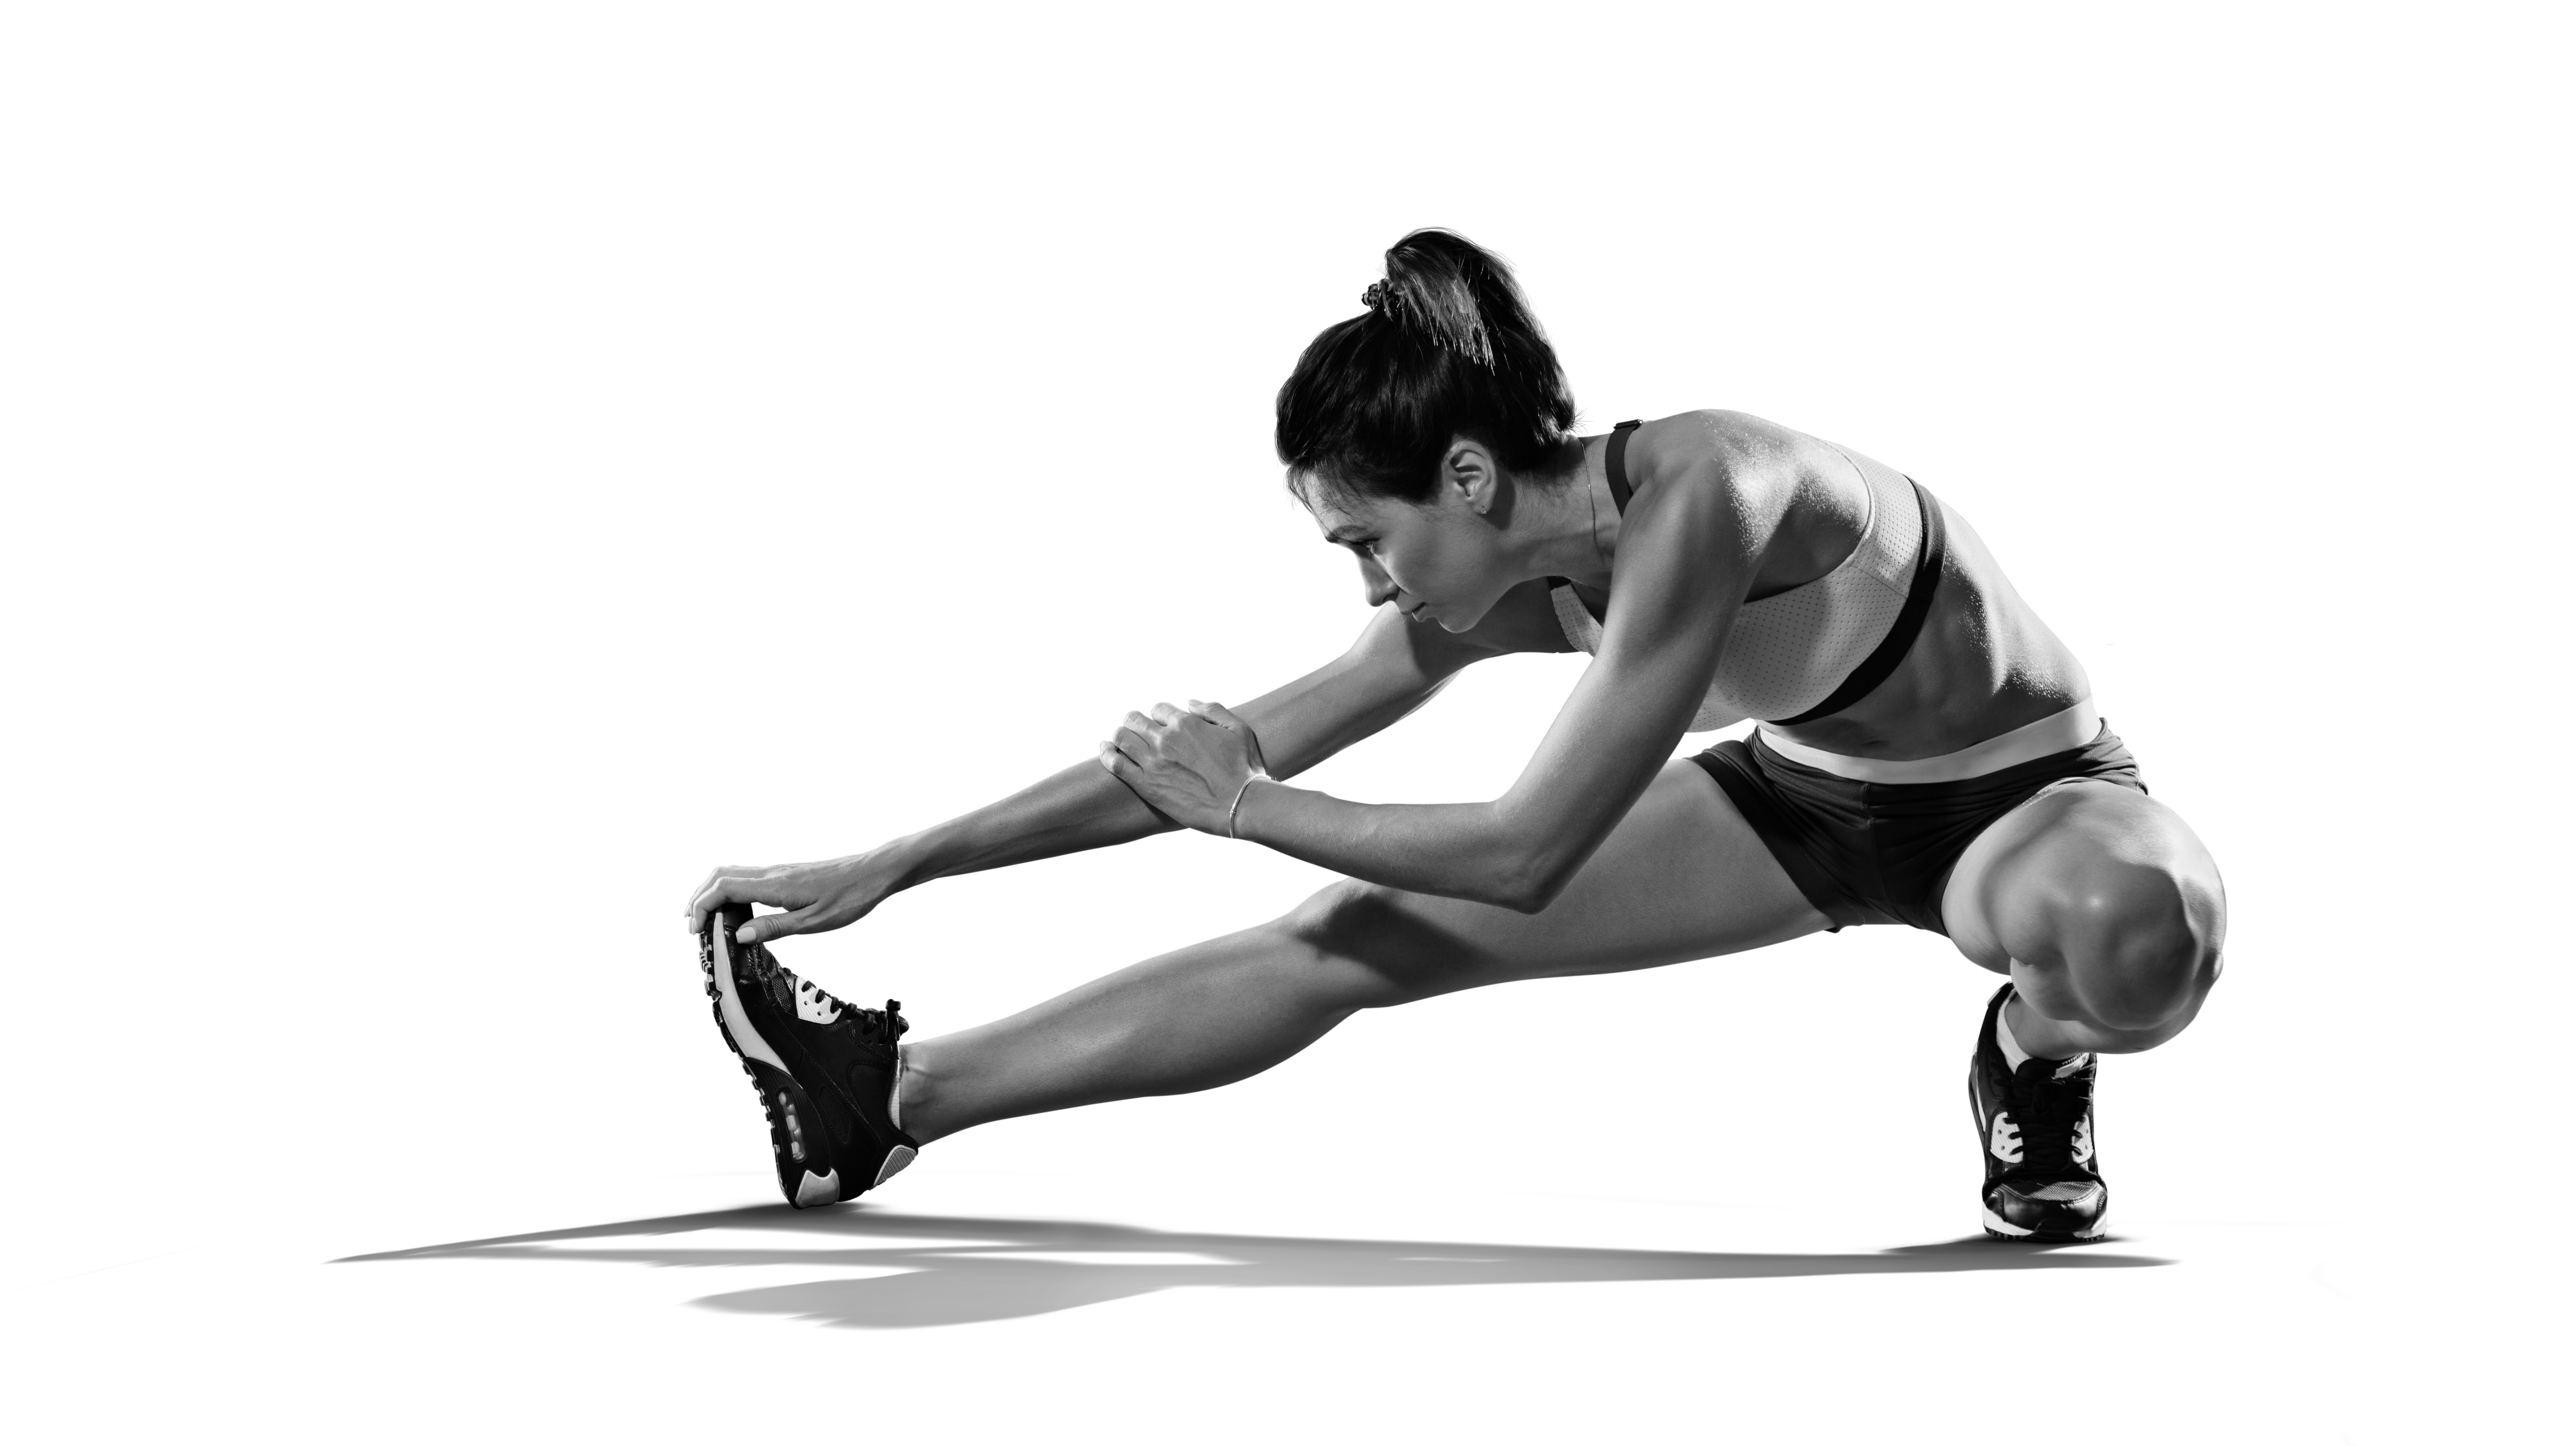 Sports.,Woman,At,The,Gym,Doing,Stretching,Exercises,And,Smiling